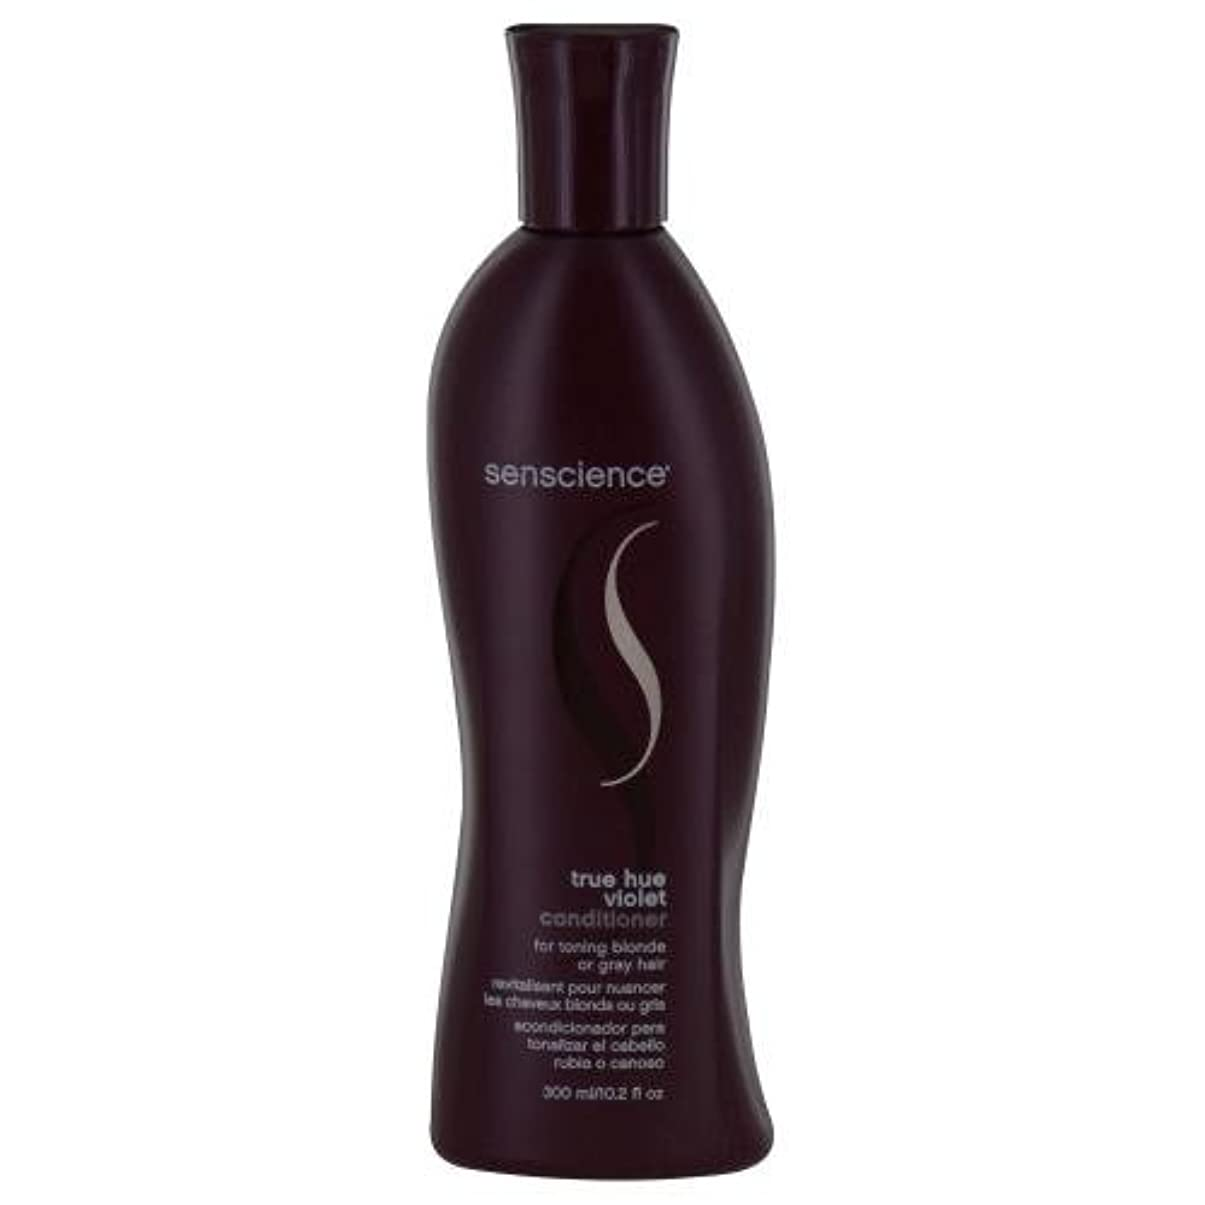 スライスカスケード手のひらby Senscience TRUE HUE VIOLET CONDITIONER (TONING BLONDE/GREY HAIR) 10.2 OZ by SENSCIENCE